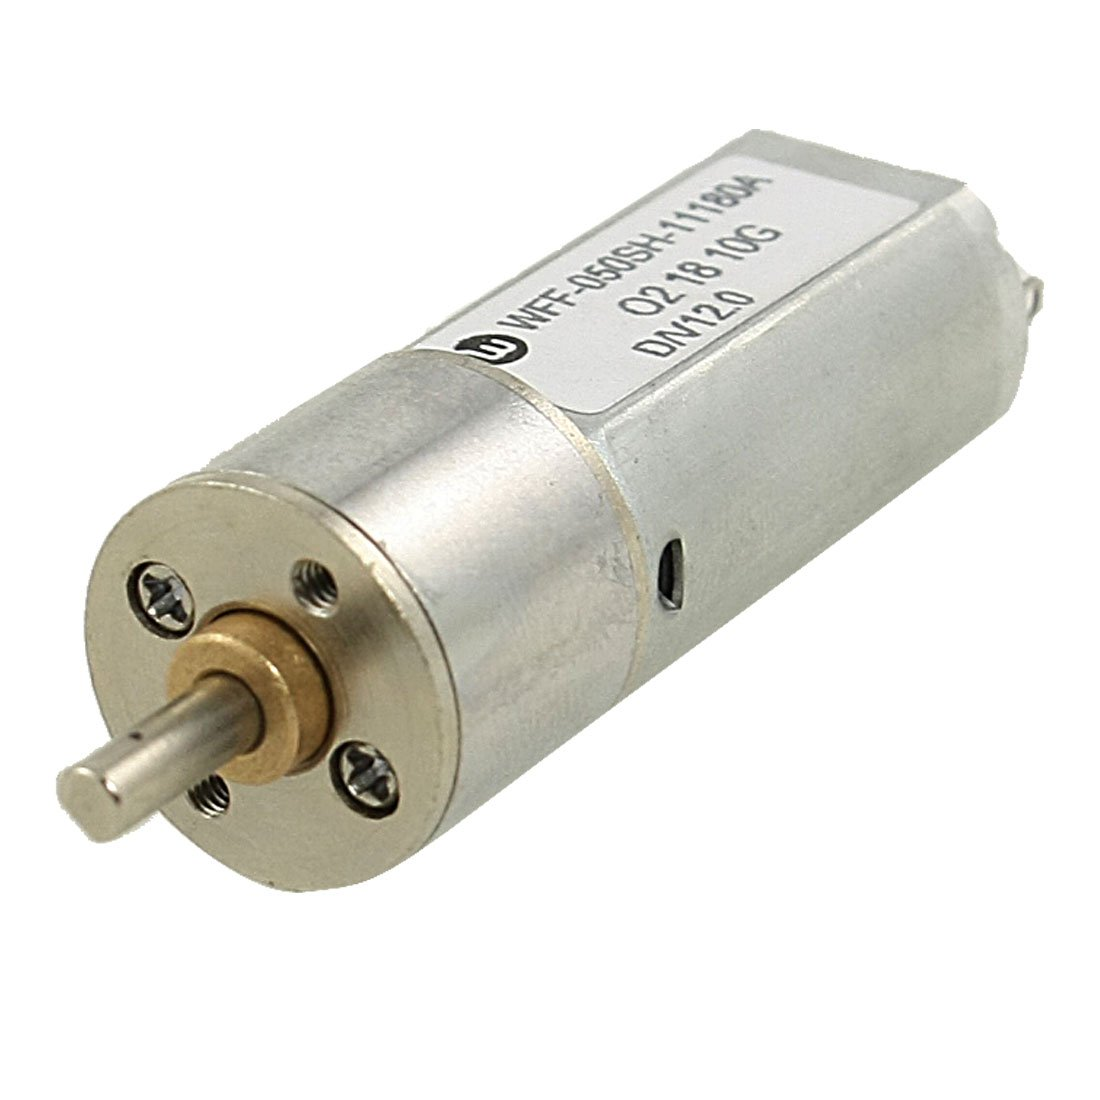 300RPM 12V 0.6A High Torque Mini Electric DC Geared Motor